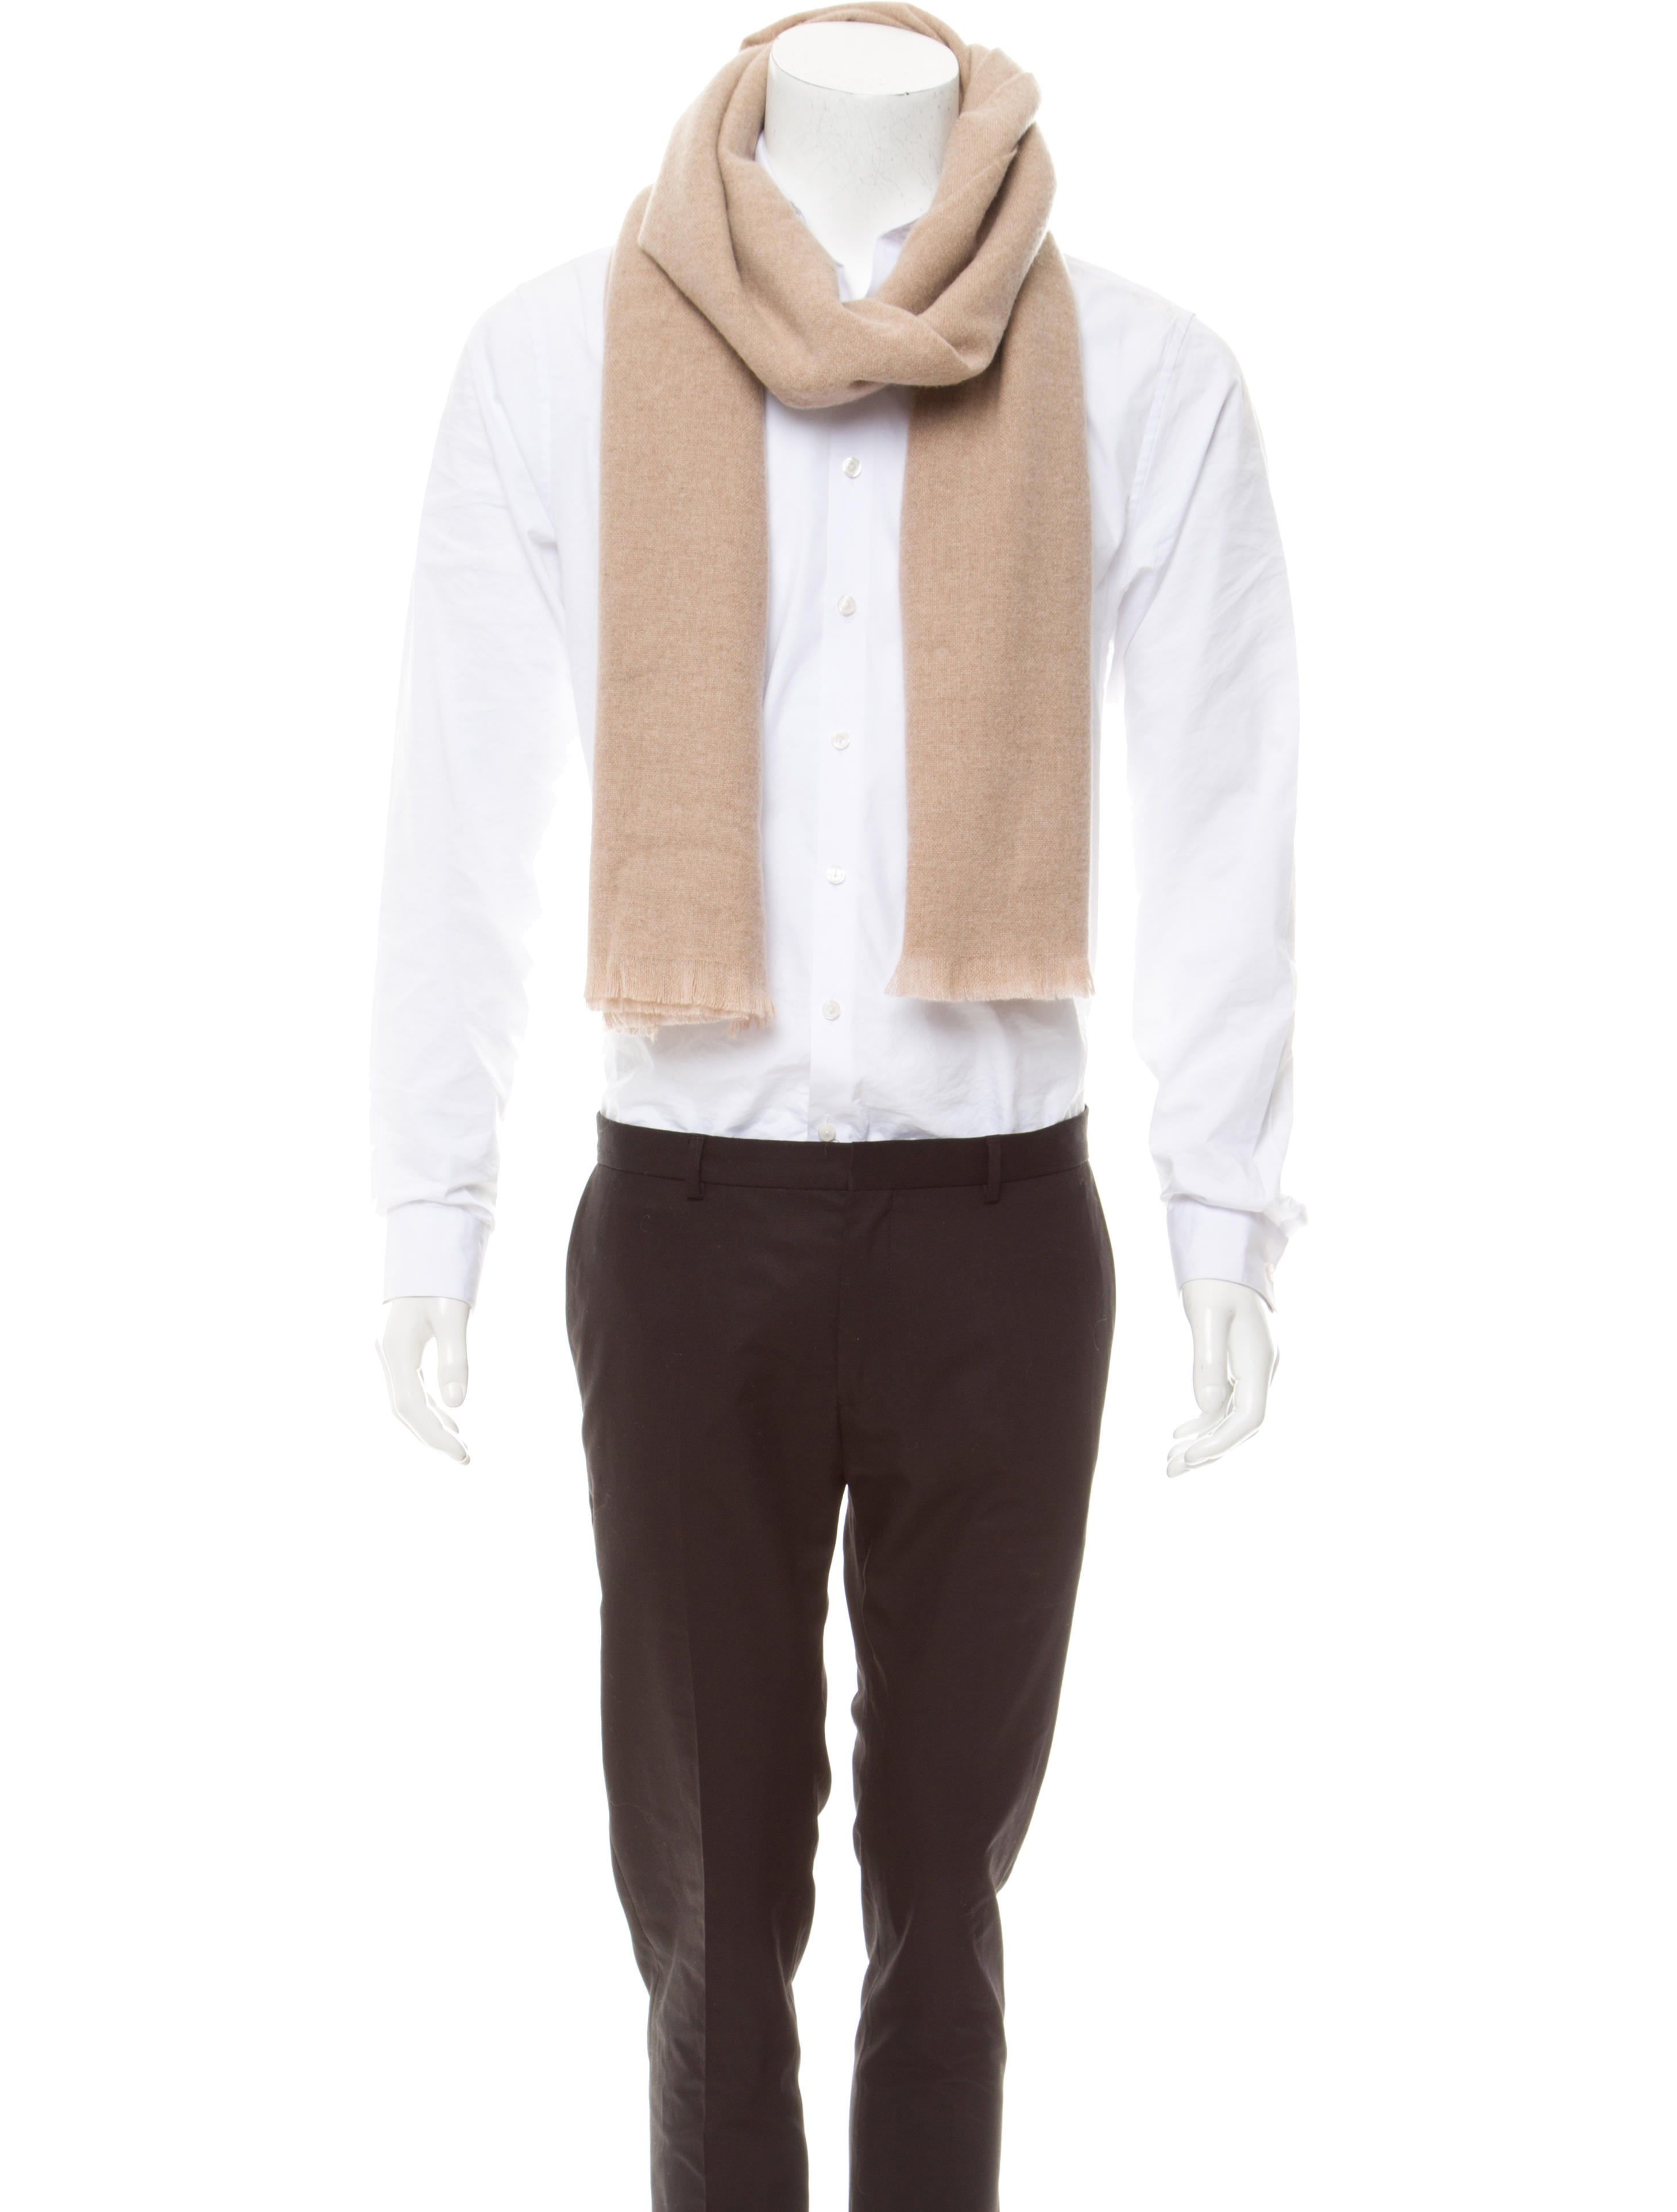 tom ford woven scarf w tags accessories